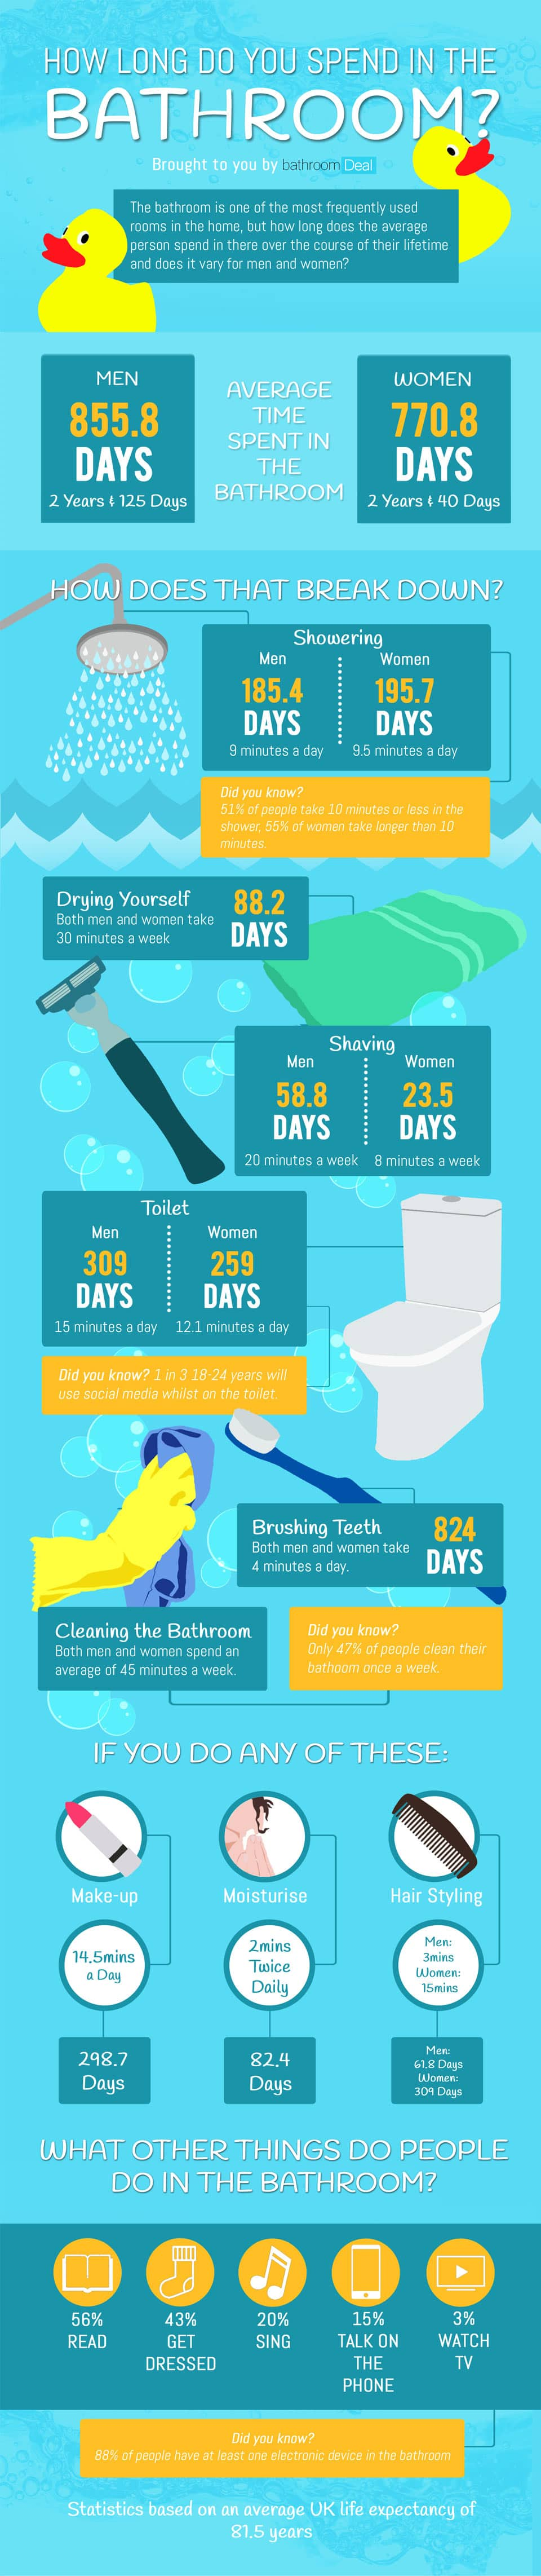 How Long Do You Spend In The Bathroom?